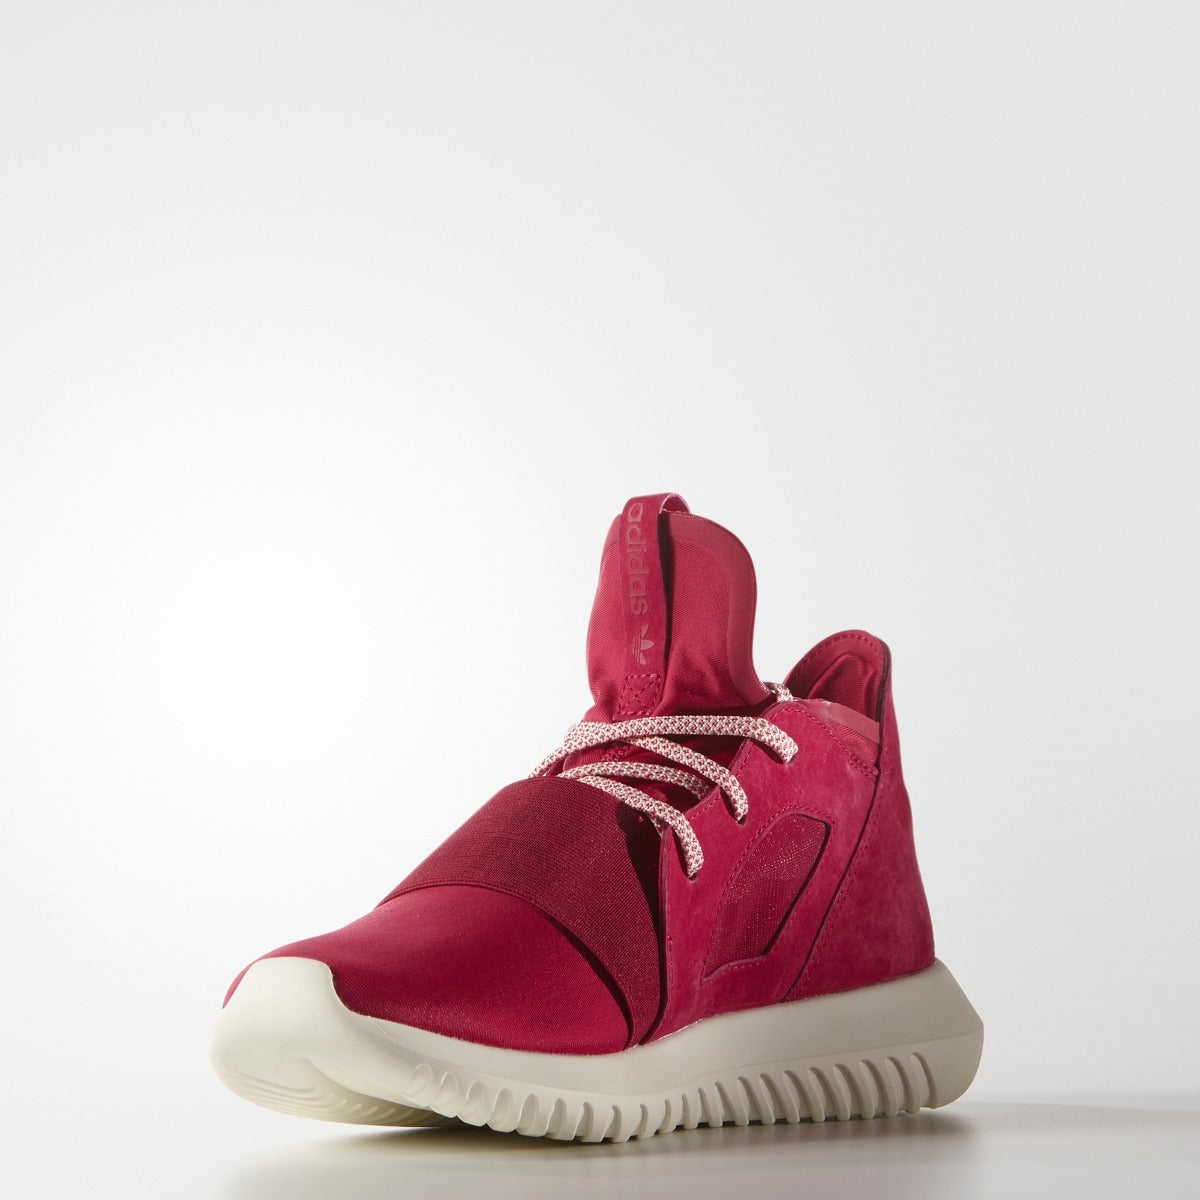 quality design cb867 09a52 Women s Adidas Originals Tubular Defiant Shoes Unity Pink. 1